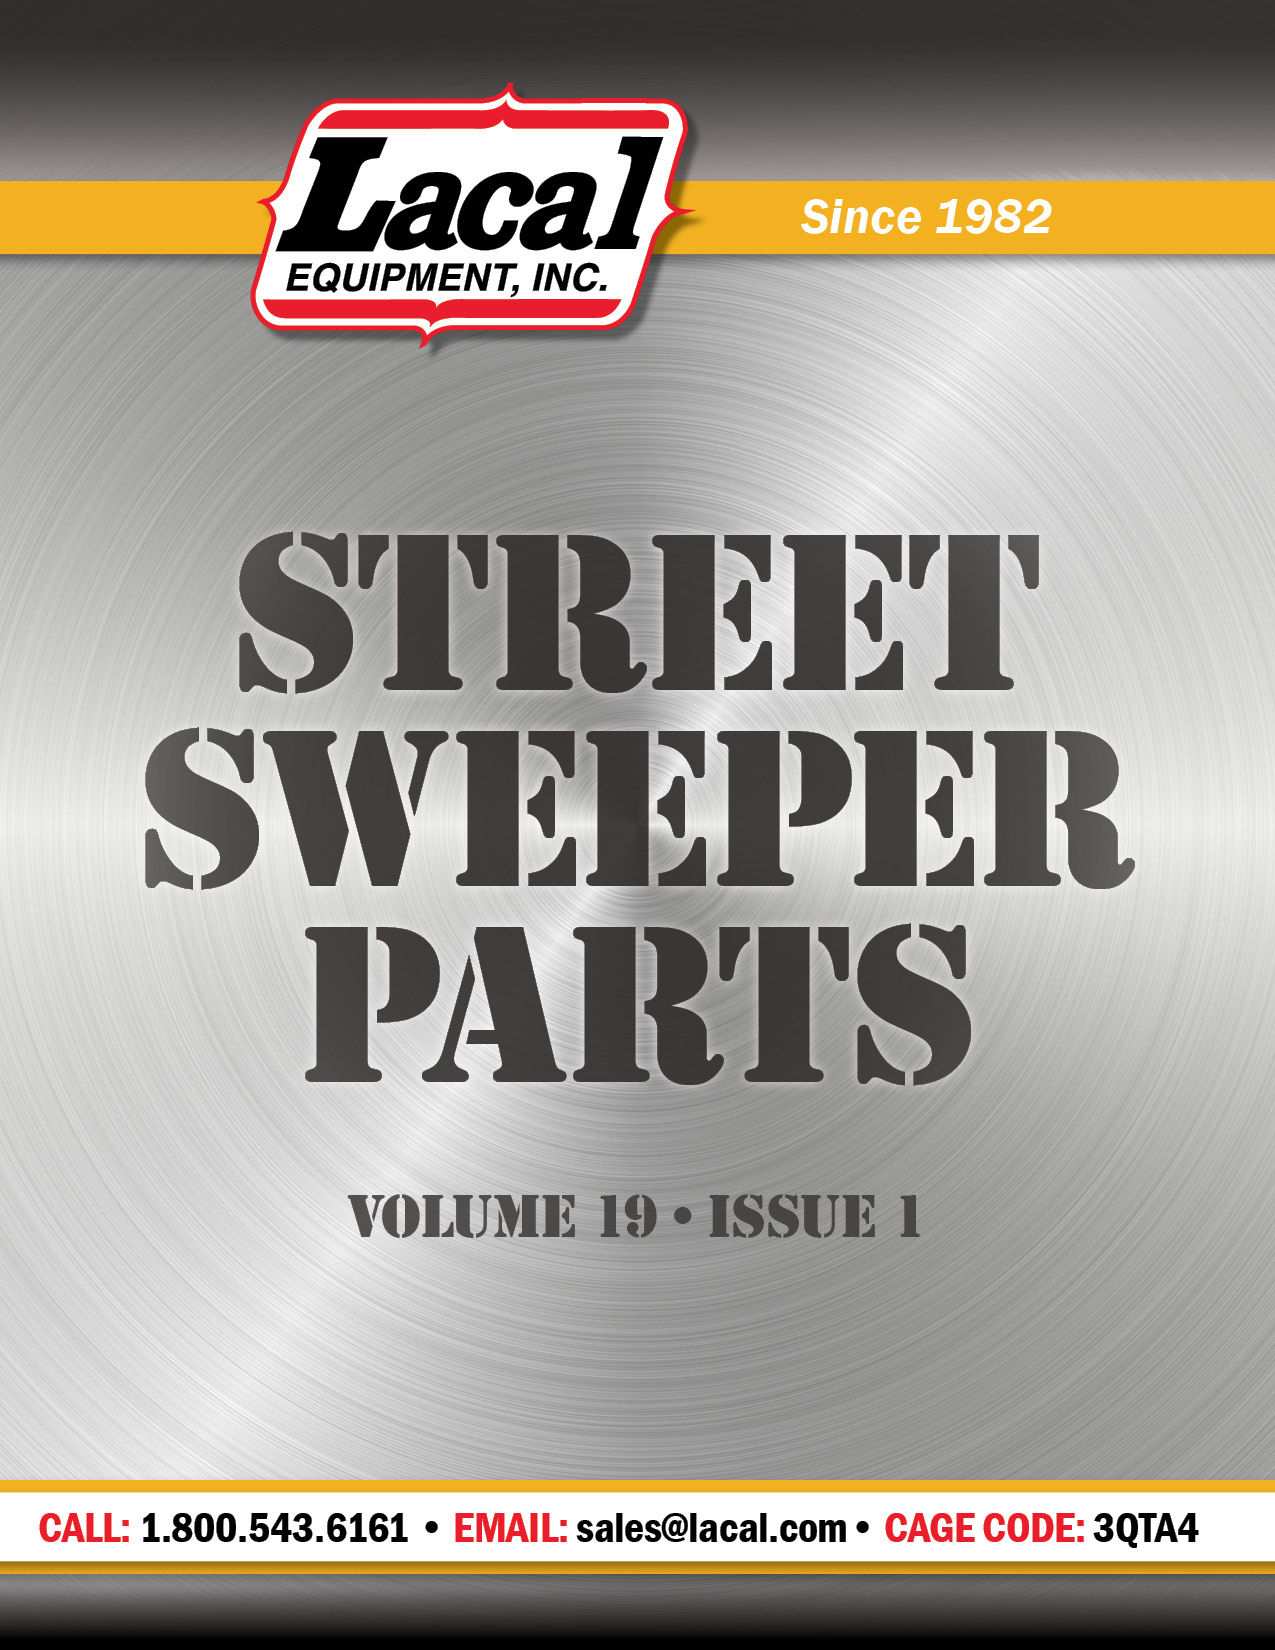 STREET SWEEPER PARTS - See a sample of the many quality replacement sweeper parts that we offer for an array of well-known brand names. Contact our knowledgeable sales staff to discover everything Lacal Equipment has to offer for your machines!1.800-543.6161